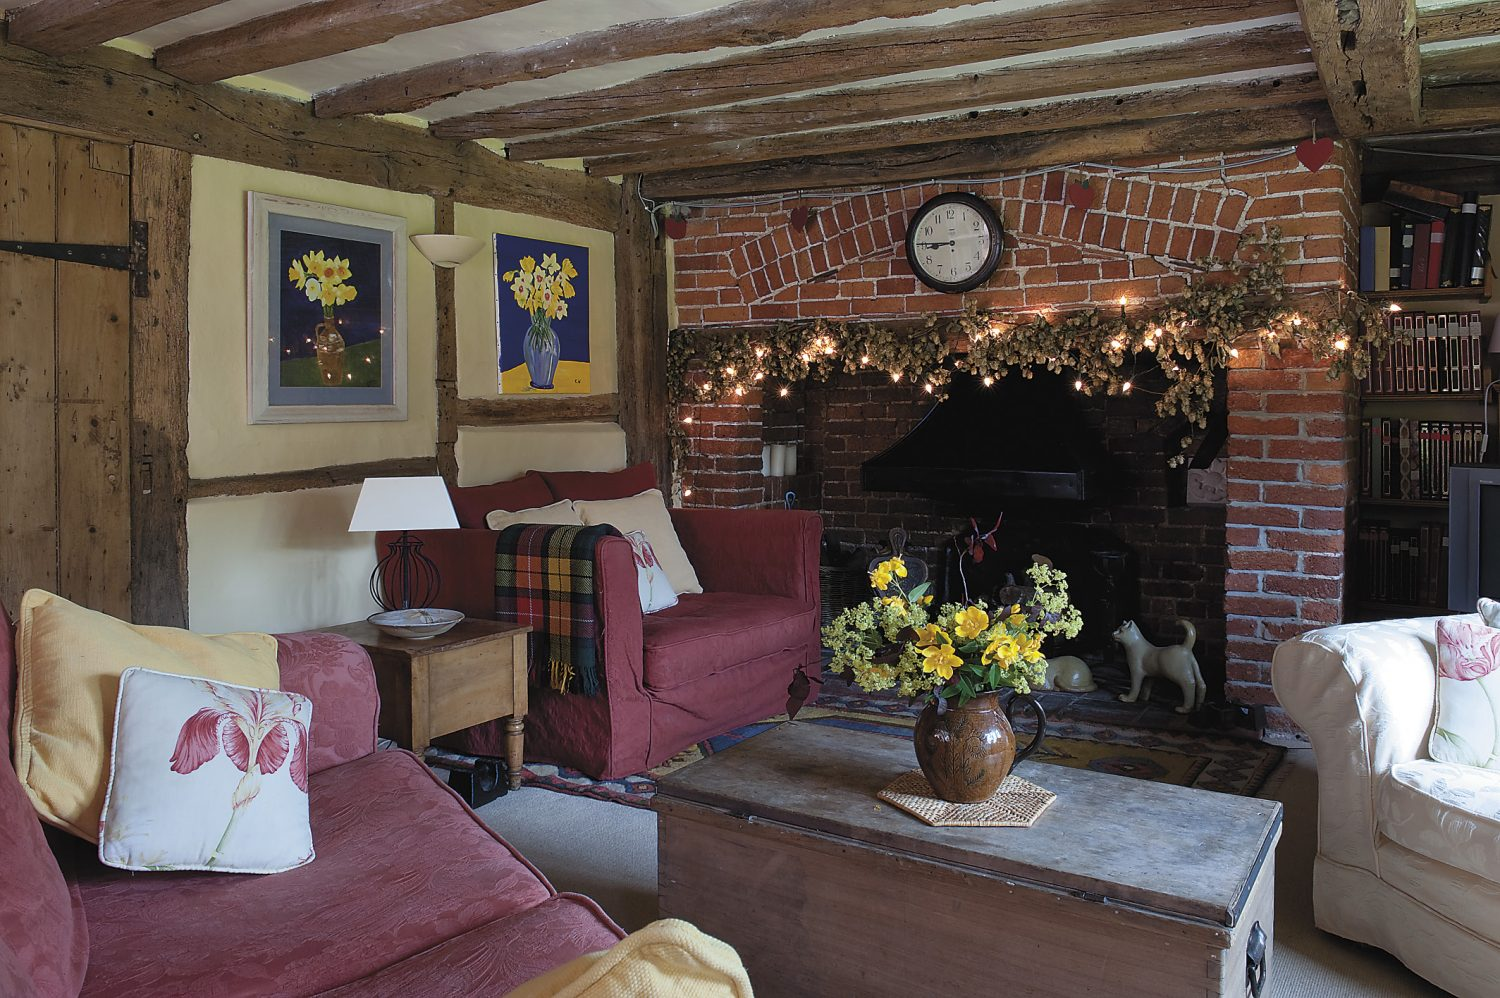 the inglenook is very much the centre of the home and is used in winter. On the wall, left, are Christine and Barry's paintings of daffodils